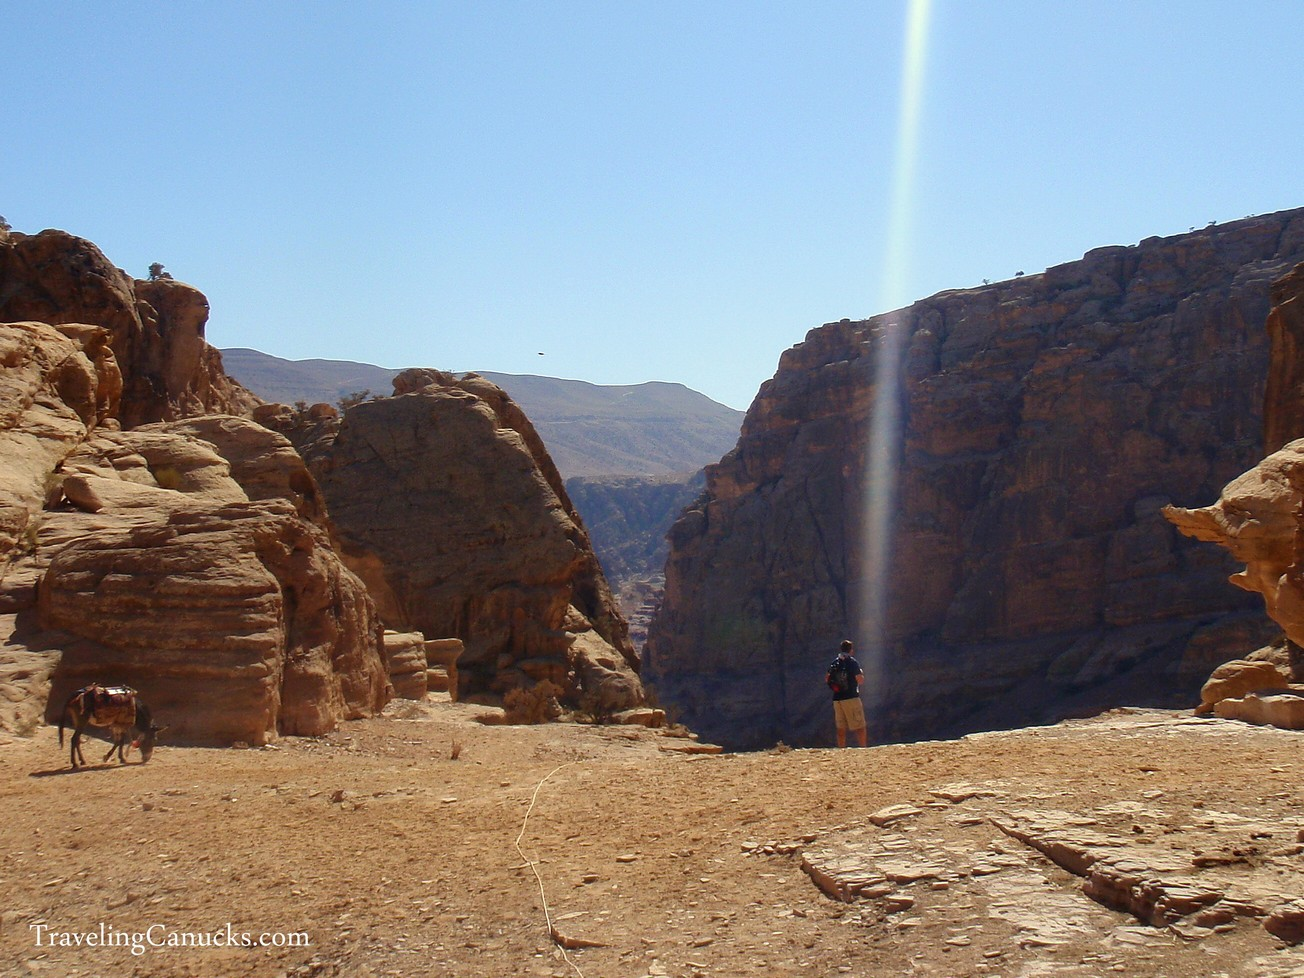 Photo of the Week: Hiking in Jordan's Holy Land